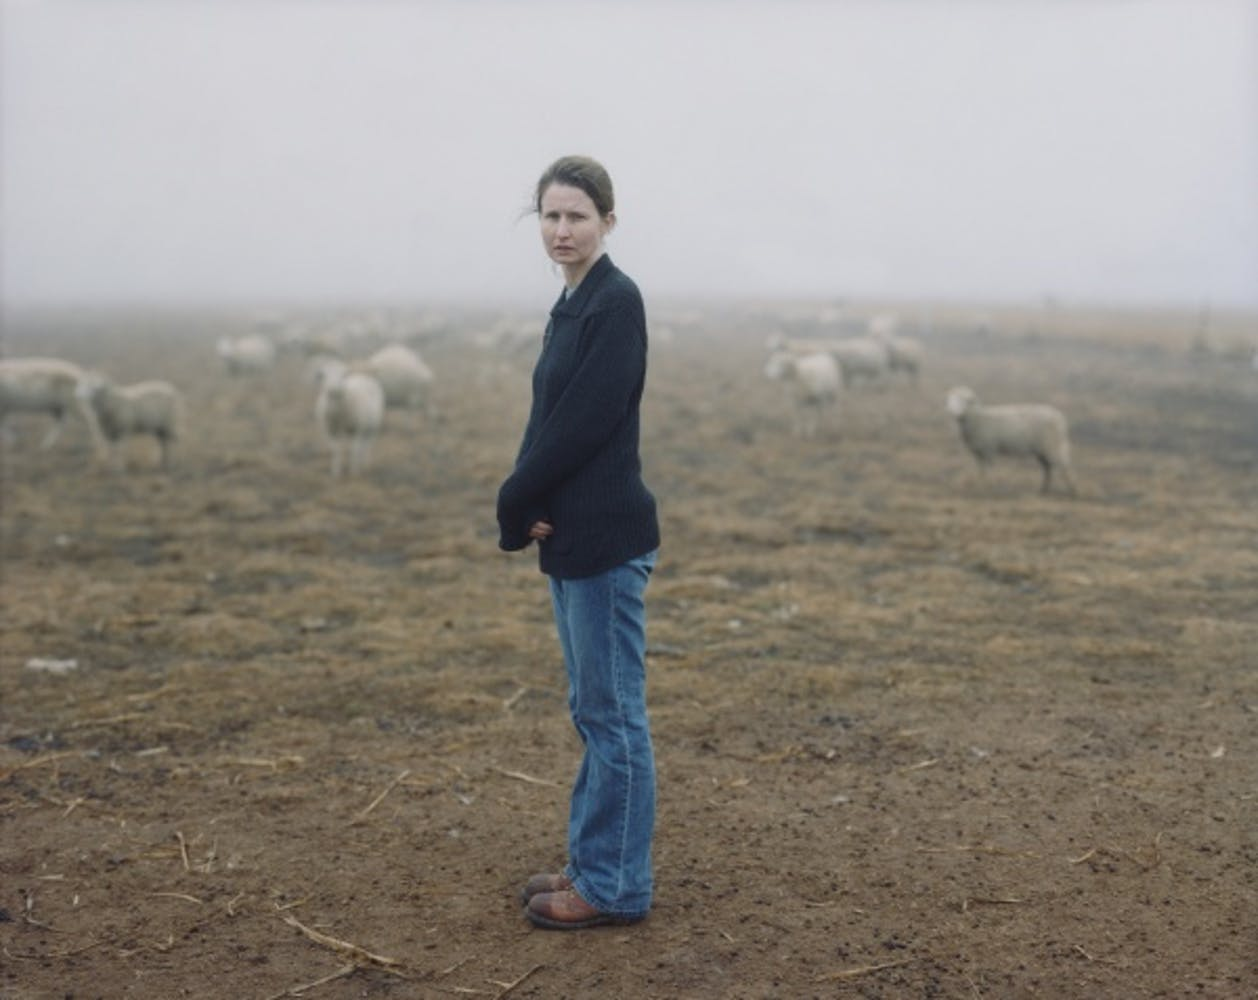 Alec Soth, Stacey, South Plains, Texas, 2004